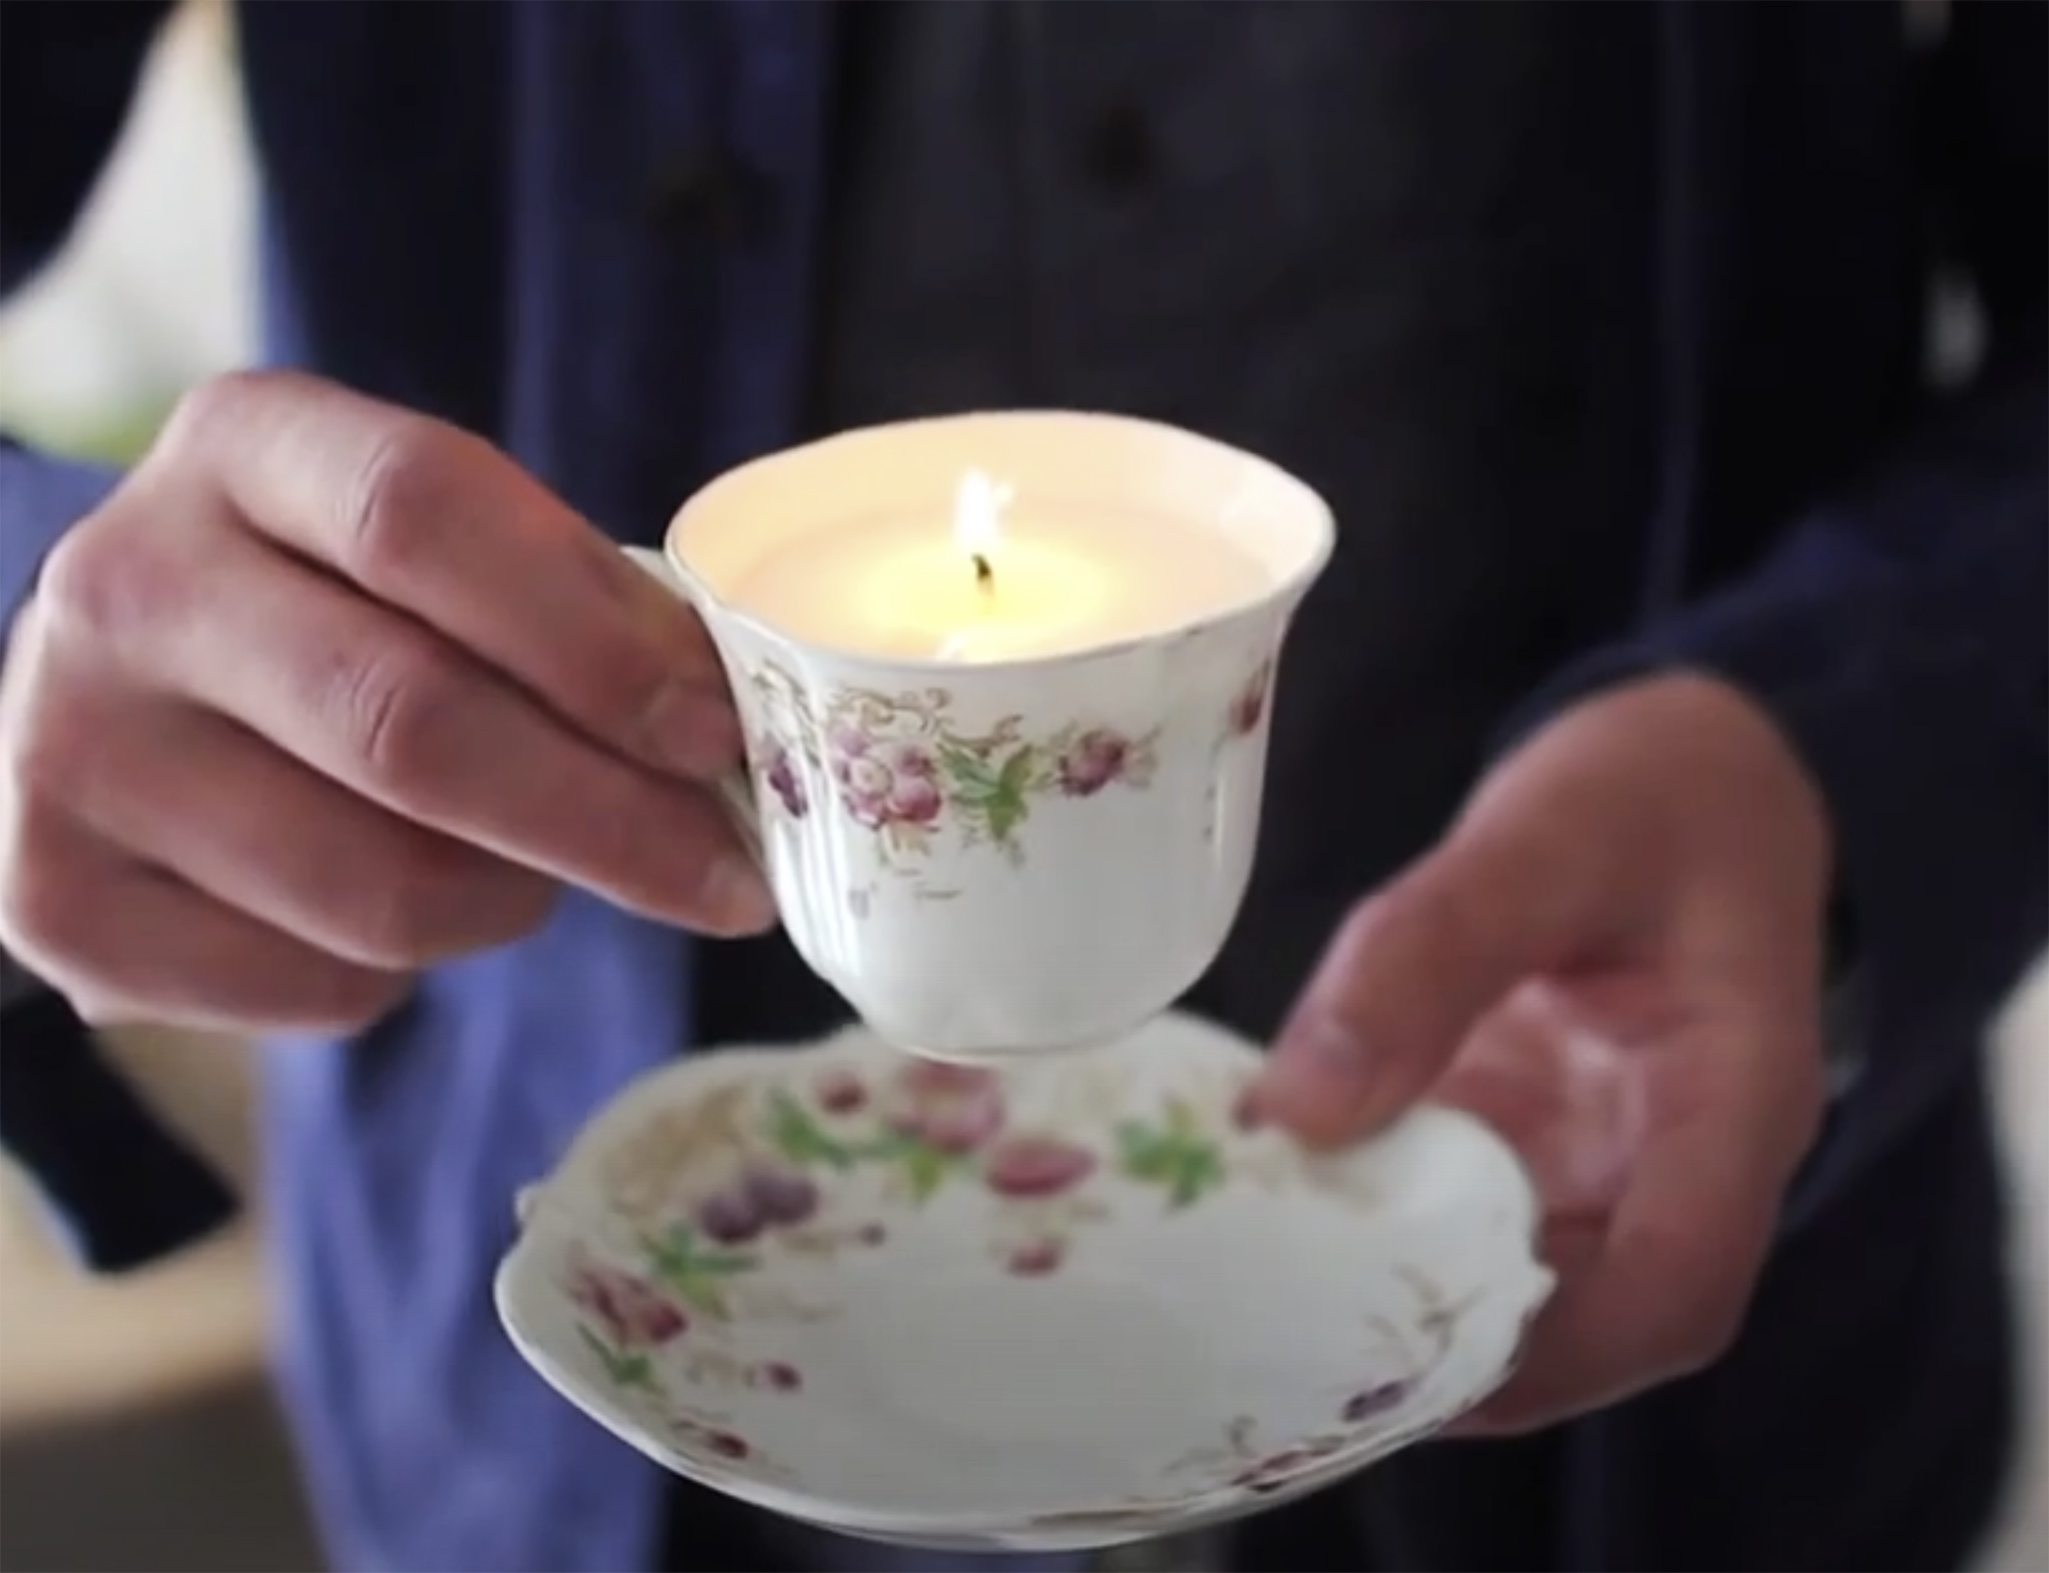 Oliver is a fan of upcycling..fill an old teacup with wax and voila..a candle